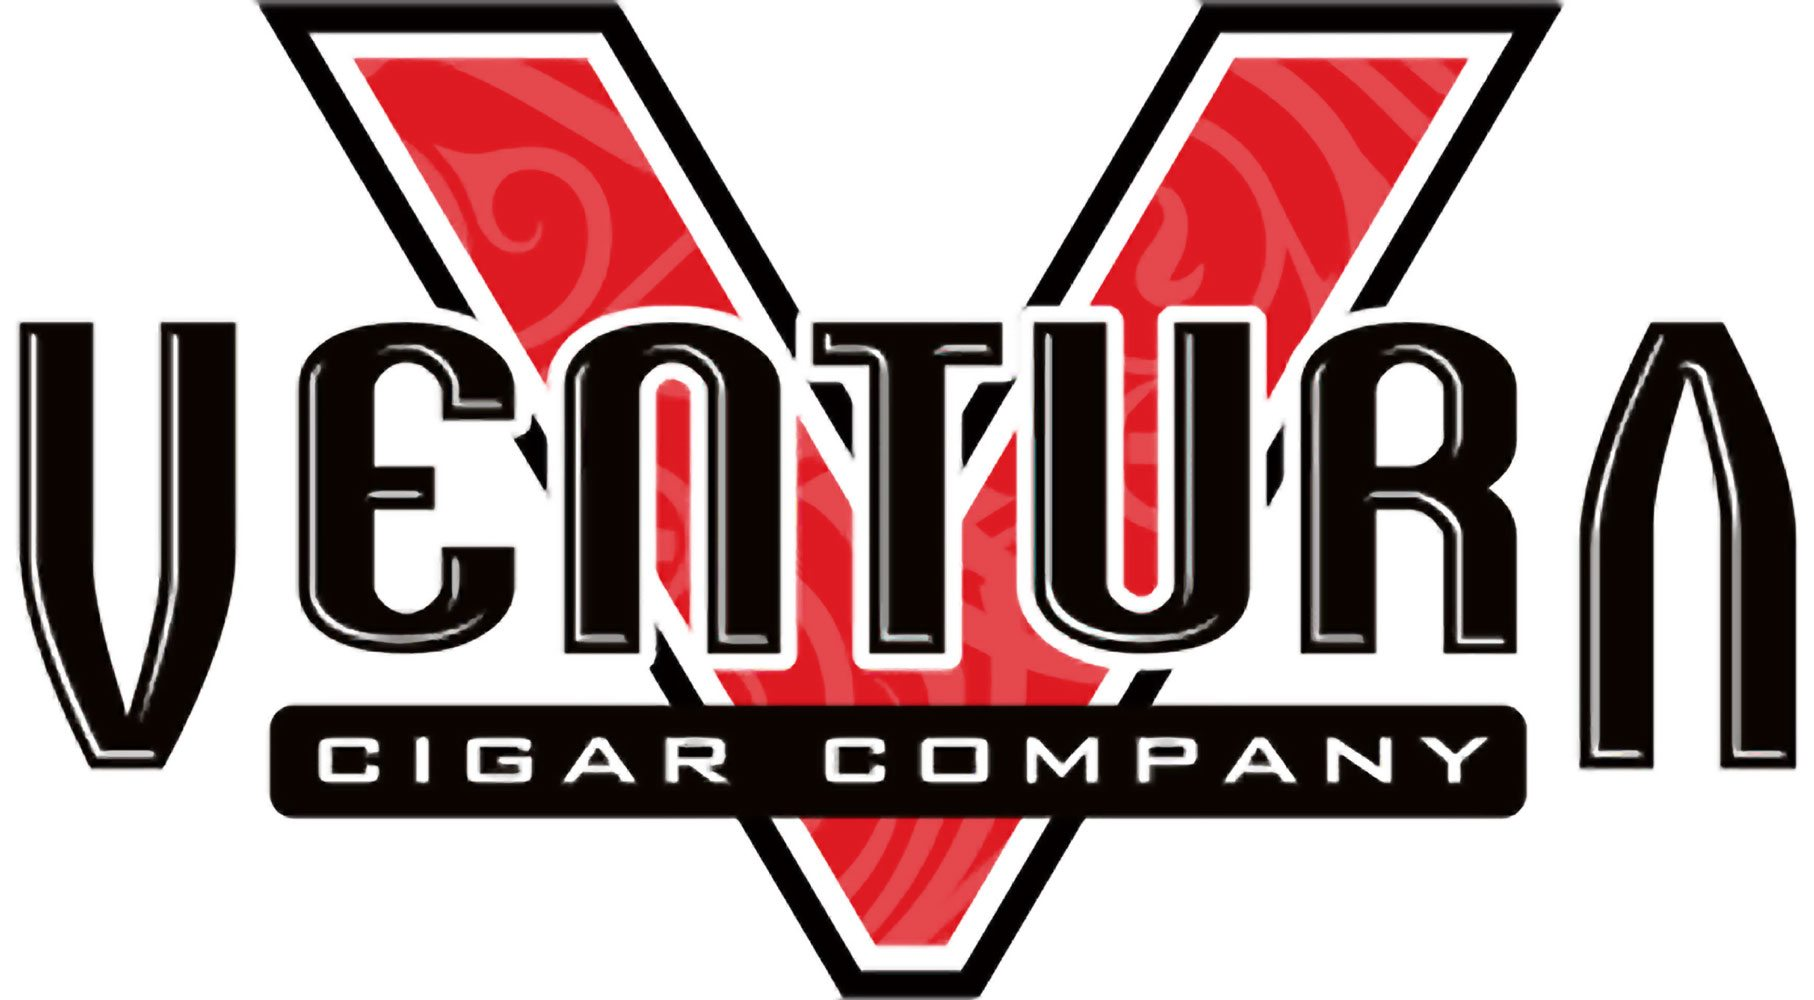 Cigar News: Ventura Cigar Company Acquires Cuban Cigar Factory